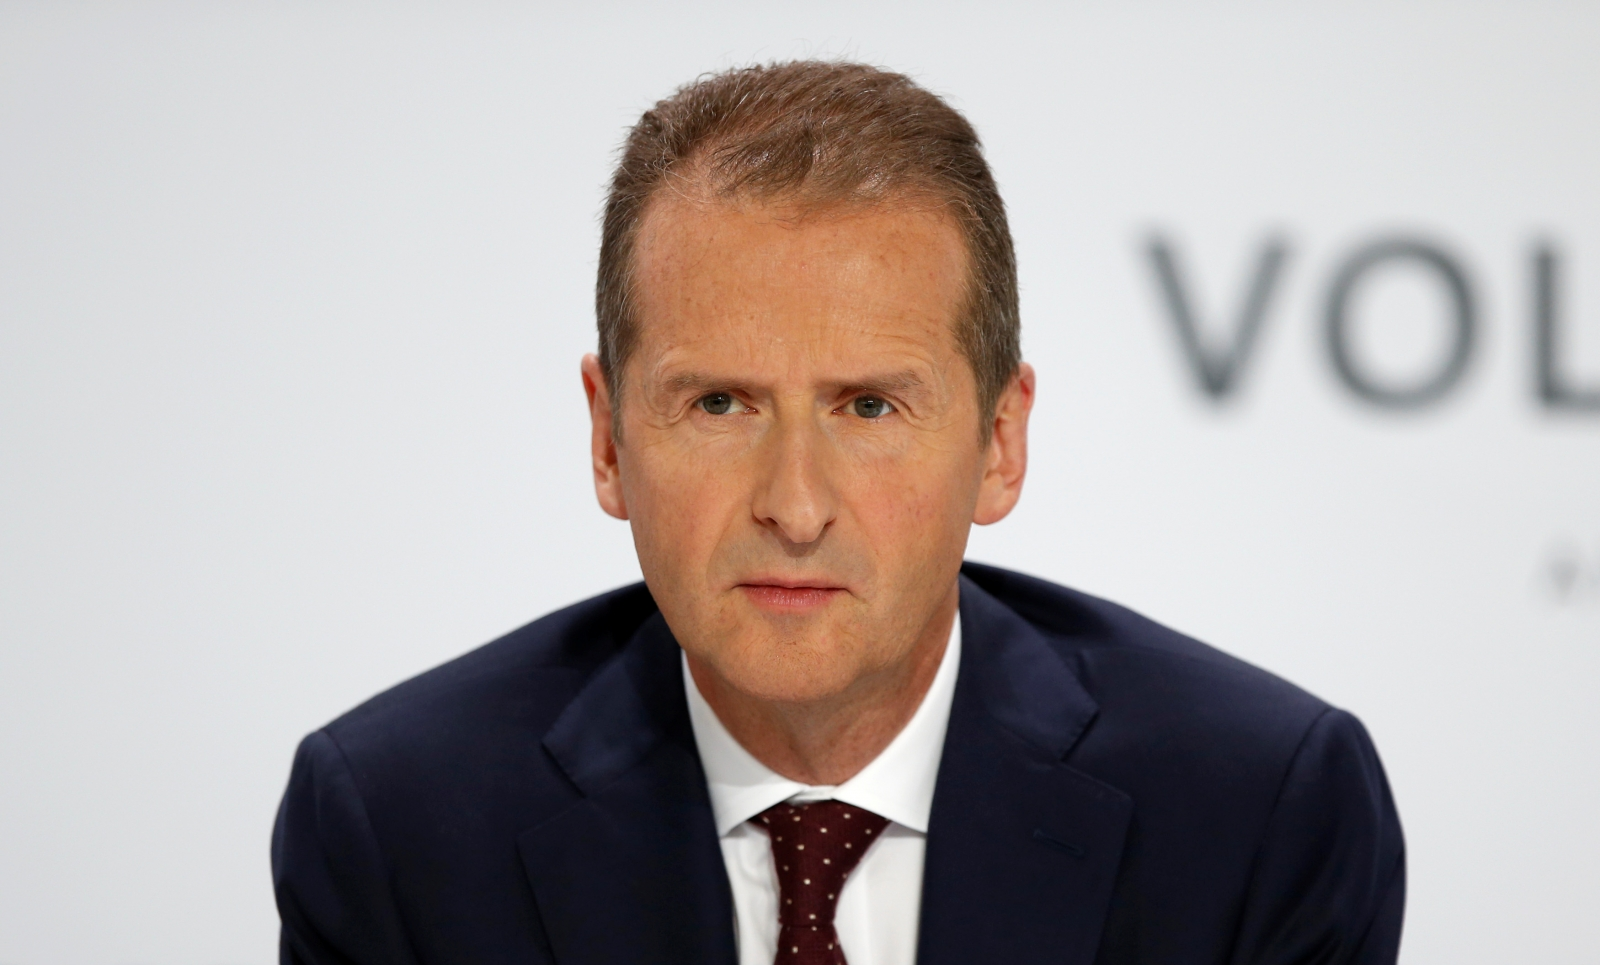 Vw Chief Herbert Diess Not Quit Over Market Manipulation Probe 1568706 besides 19124 in addition Volkswagen Dominates The Chinese Car Market in addition Tata Motors Passenger Cars Grew By 15 In October 2015 additionally Nissan Xmotion Concept Shows What The  pany S Suvs May Look Like From 2020. on volkswagen passenger cars company